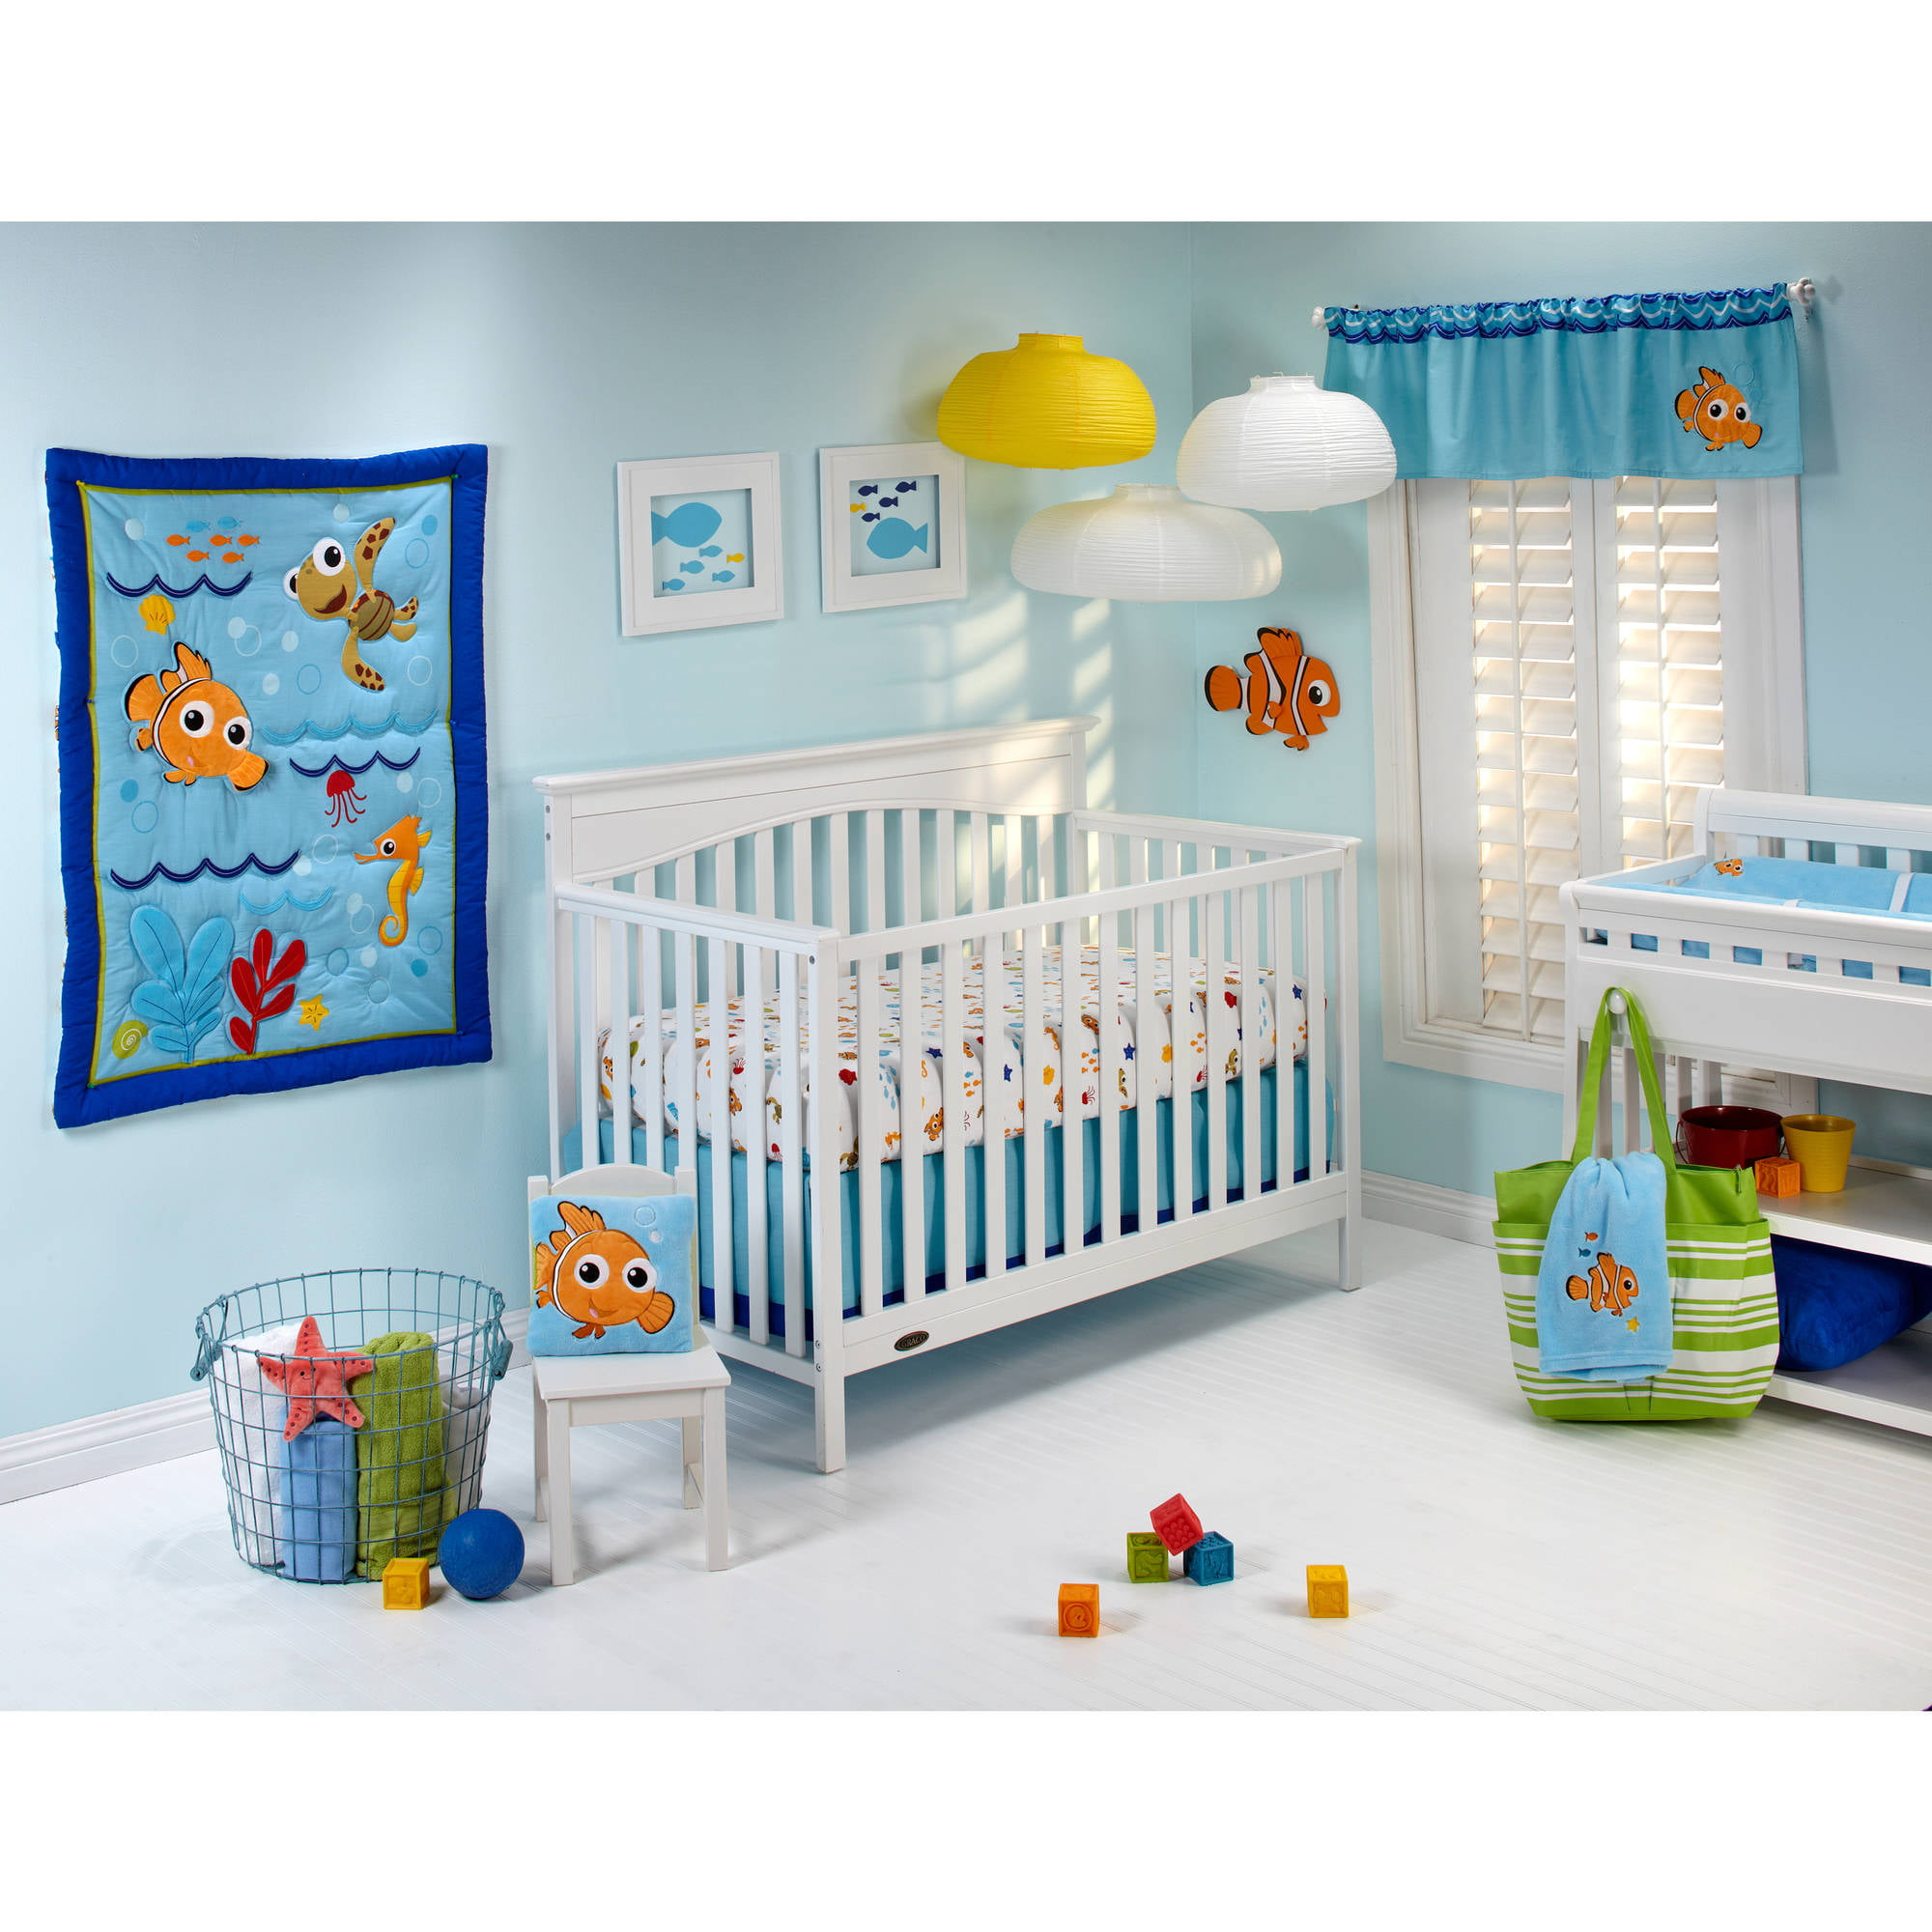 Disney Baby Bedding Nemo S Wavy Days 4 Piece Crib Set Com